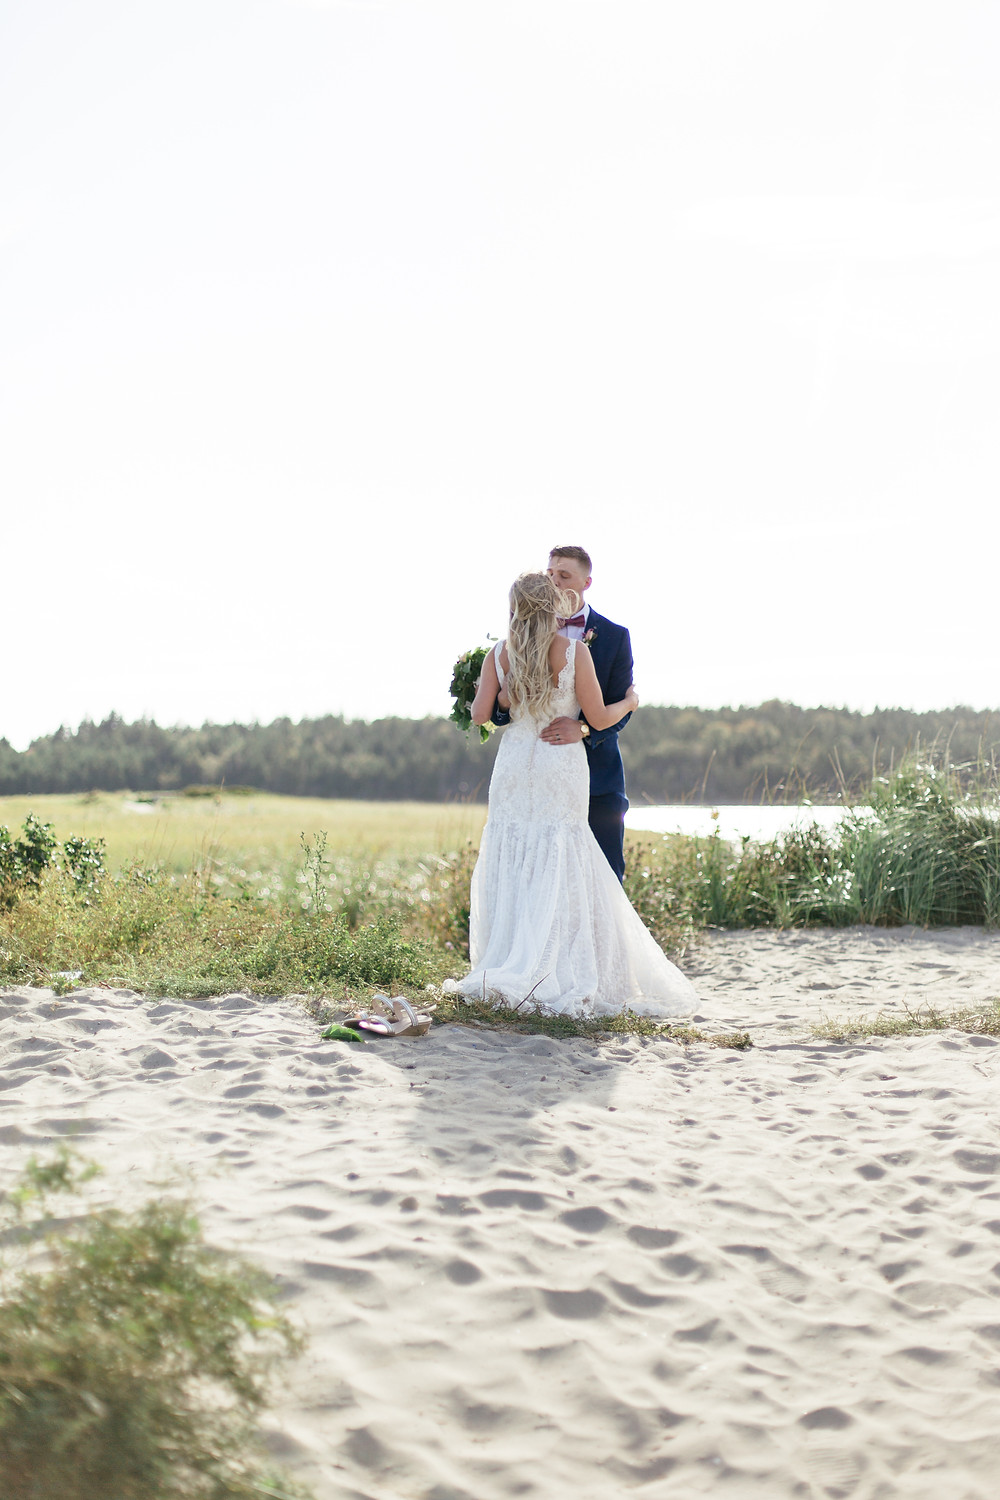 Planning and elopement or micro wedding in Nova Scotia with Marie Roy Photography